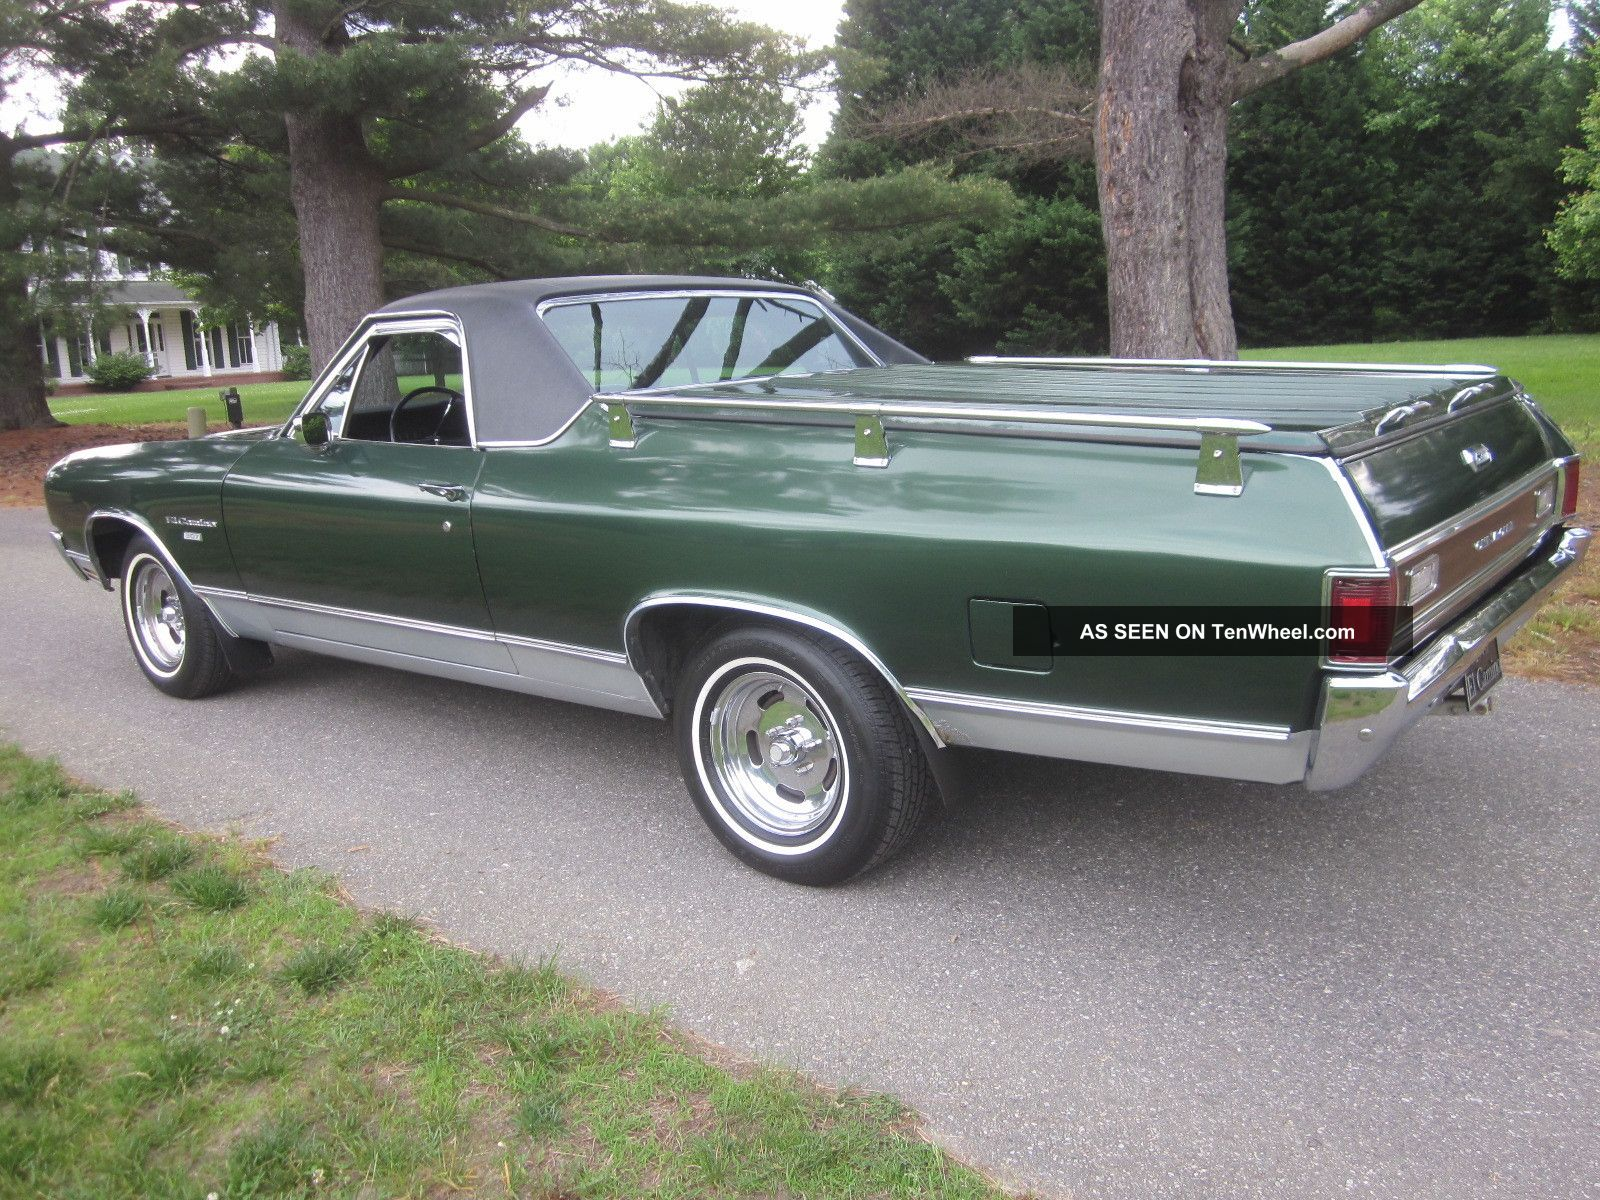 1970 Chevrolet El Camino Related Infomationspecifications Weili Gm Engine Lgw Car 307 Auto Last Owner 40yrs